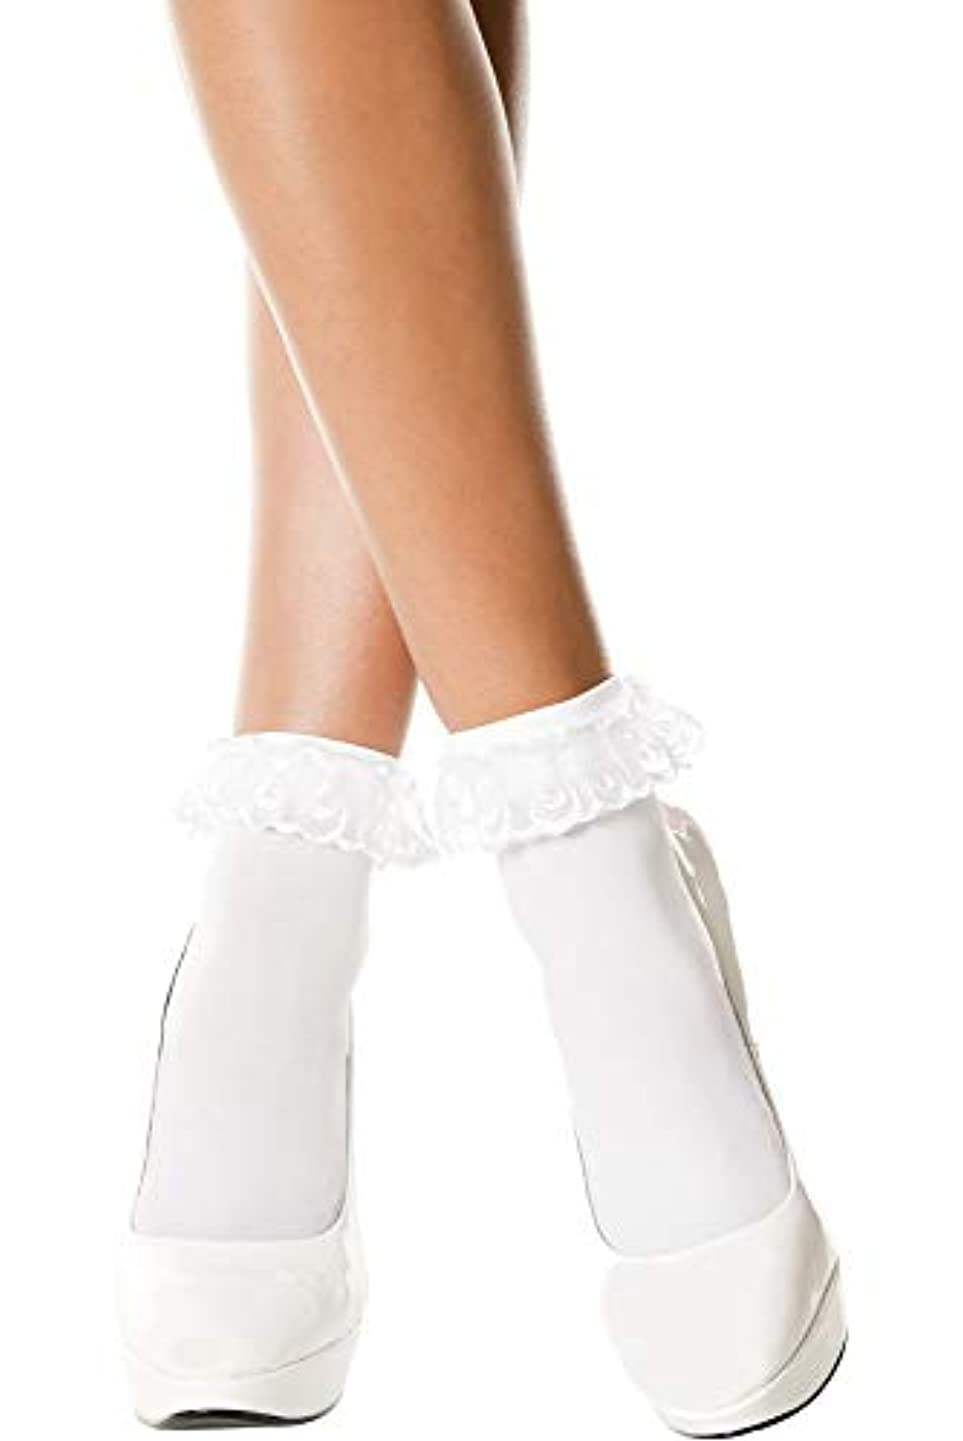 Music Legs Opaque Anklet with Ruffled Lace Top